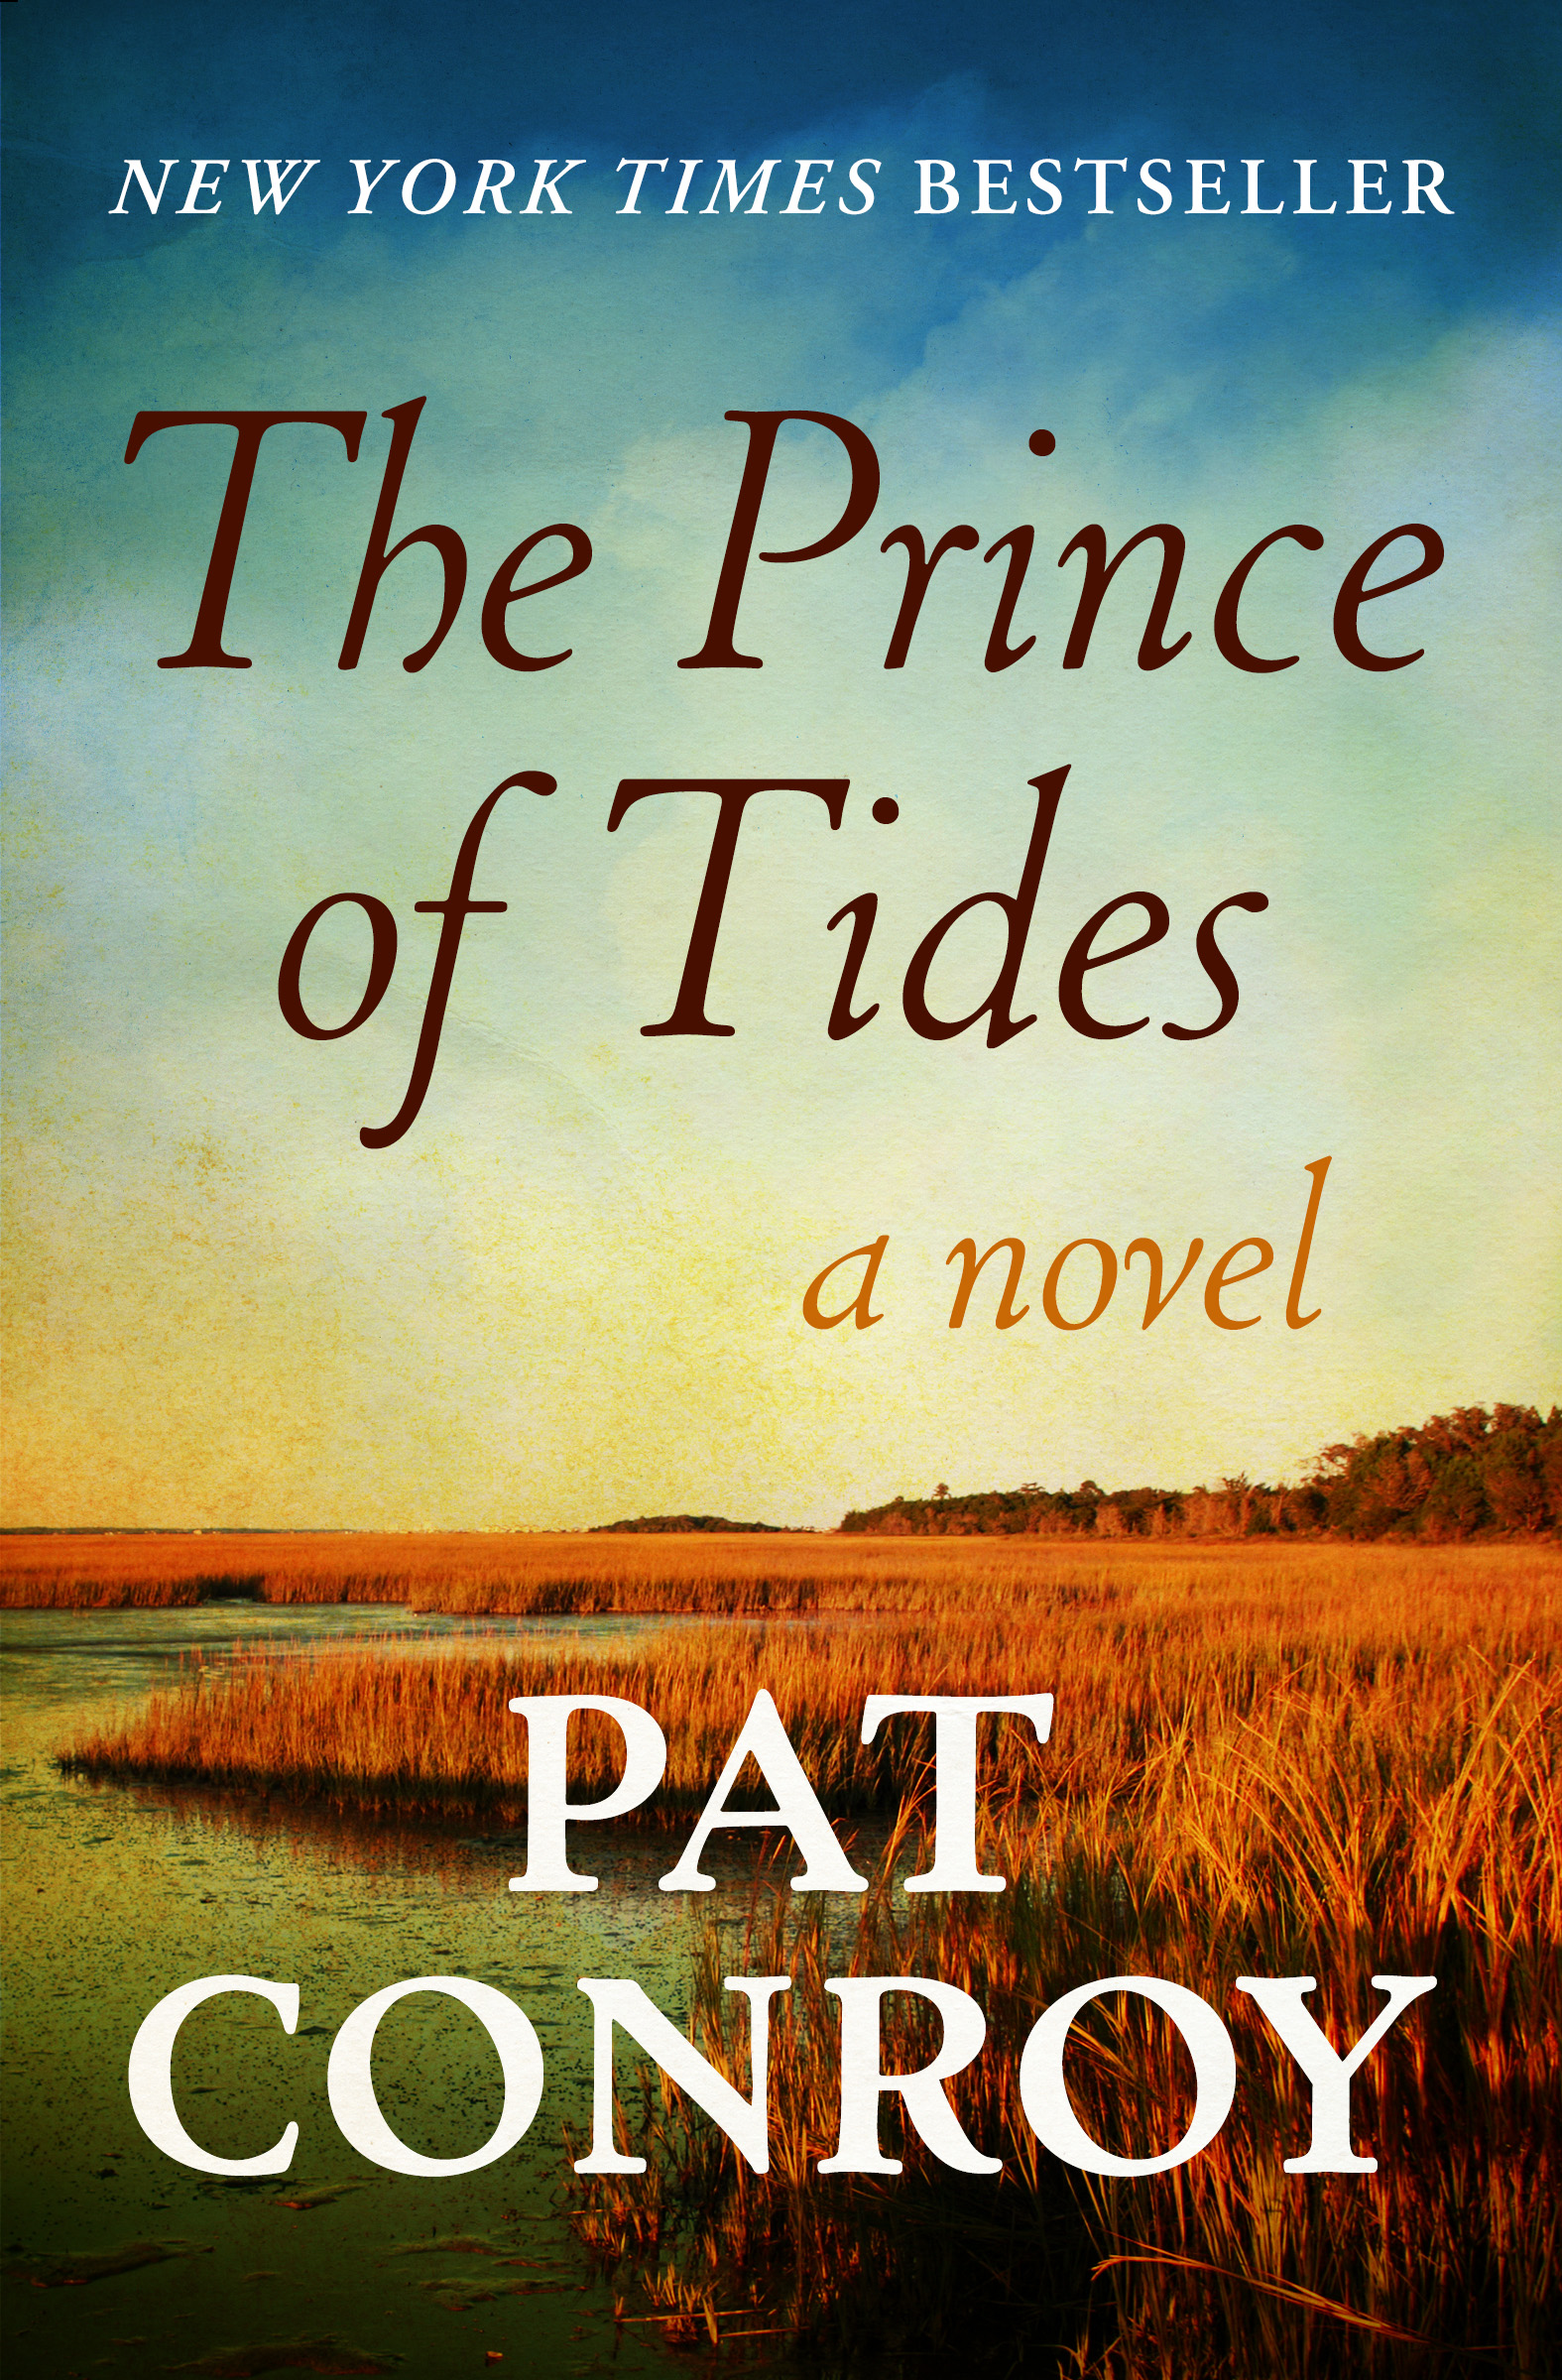 The prince of tides cover image